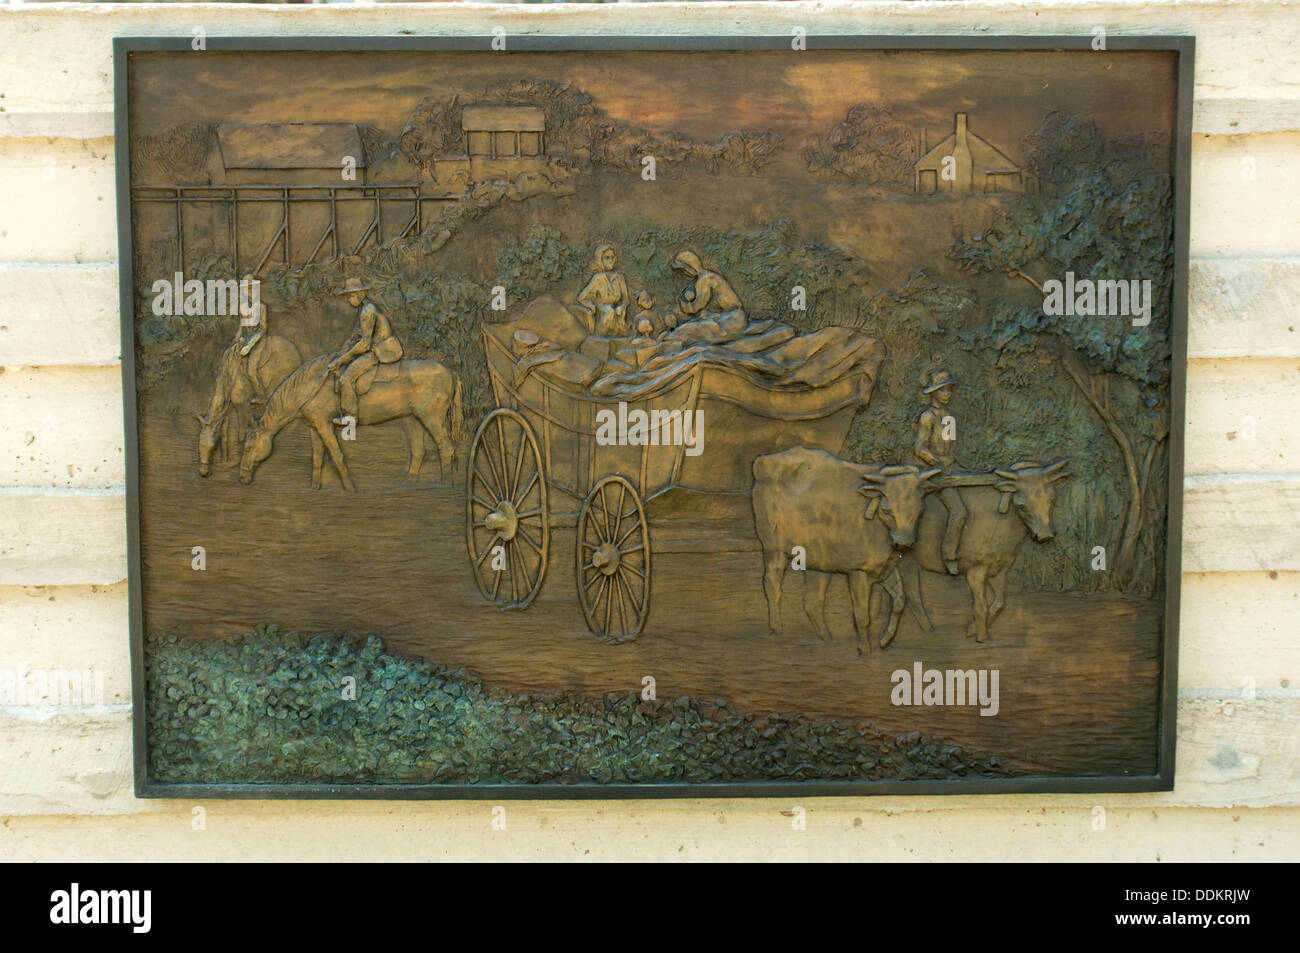 Bas-relief of slaves escaping to freedom at Union Army's Contraband Camp in Corinth MS, 1862-1864. Digital photograph - Stock Image